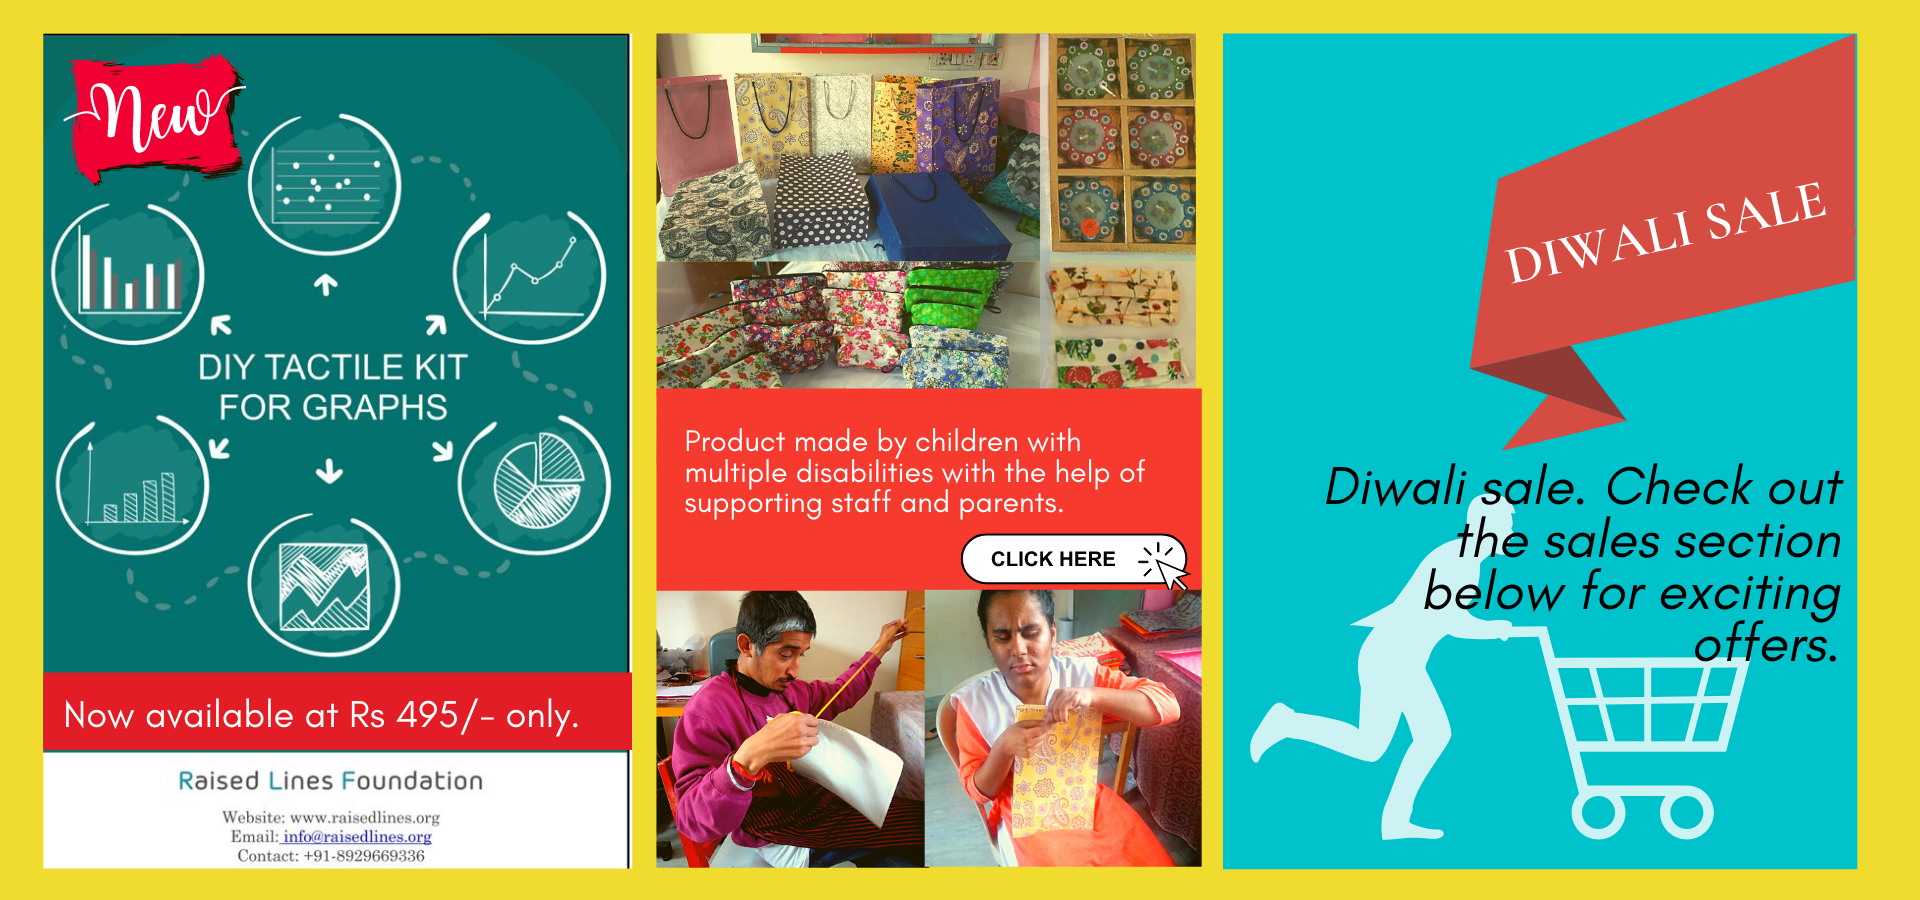 Diwali Offers- vocational products by children with multiple disabilities, Introducing new  DIY Tactile graph kit at Rs 495 only and check out our big diwali sale below.